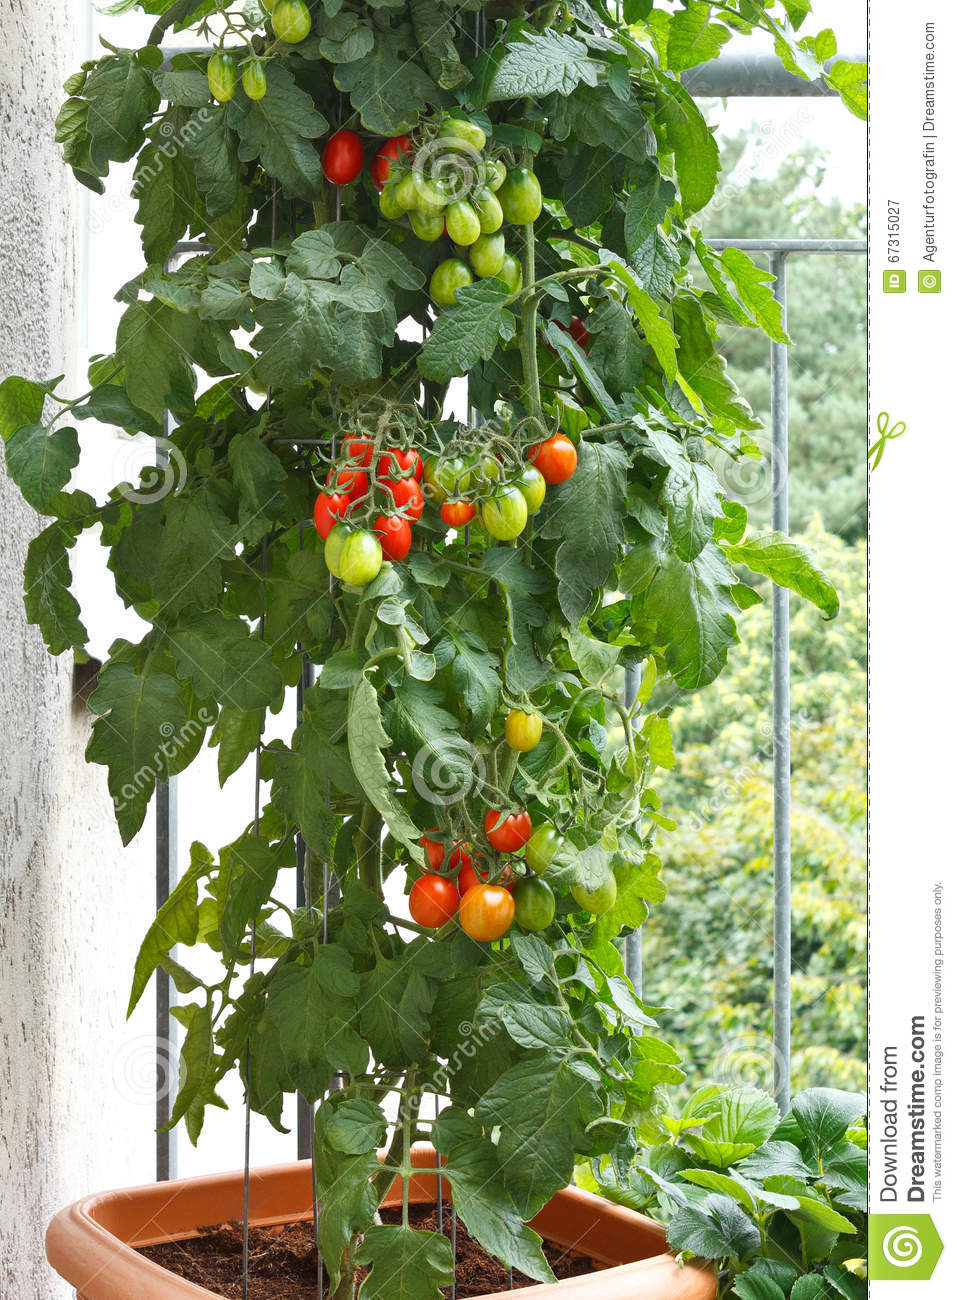 tomates de balcon de pot de plante de tomate photo stock image 67315027. Black Bedroom Furniture Sets. Home Design Ideas